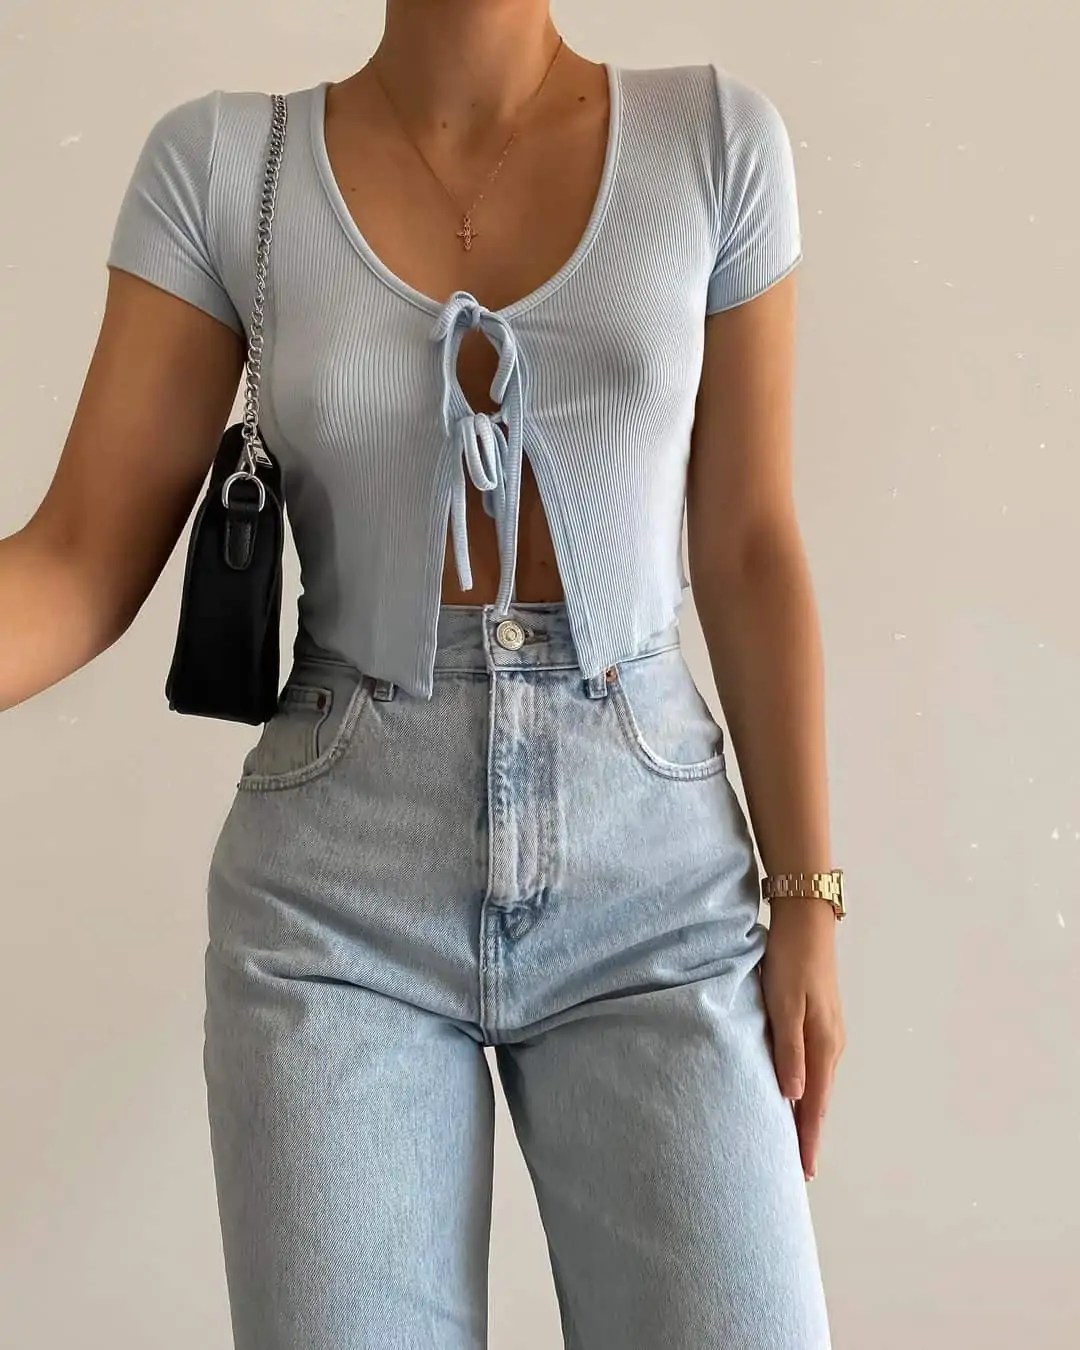 100+ Outfits to Inspire your next shopping haul 145